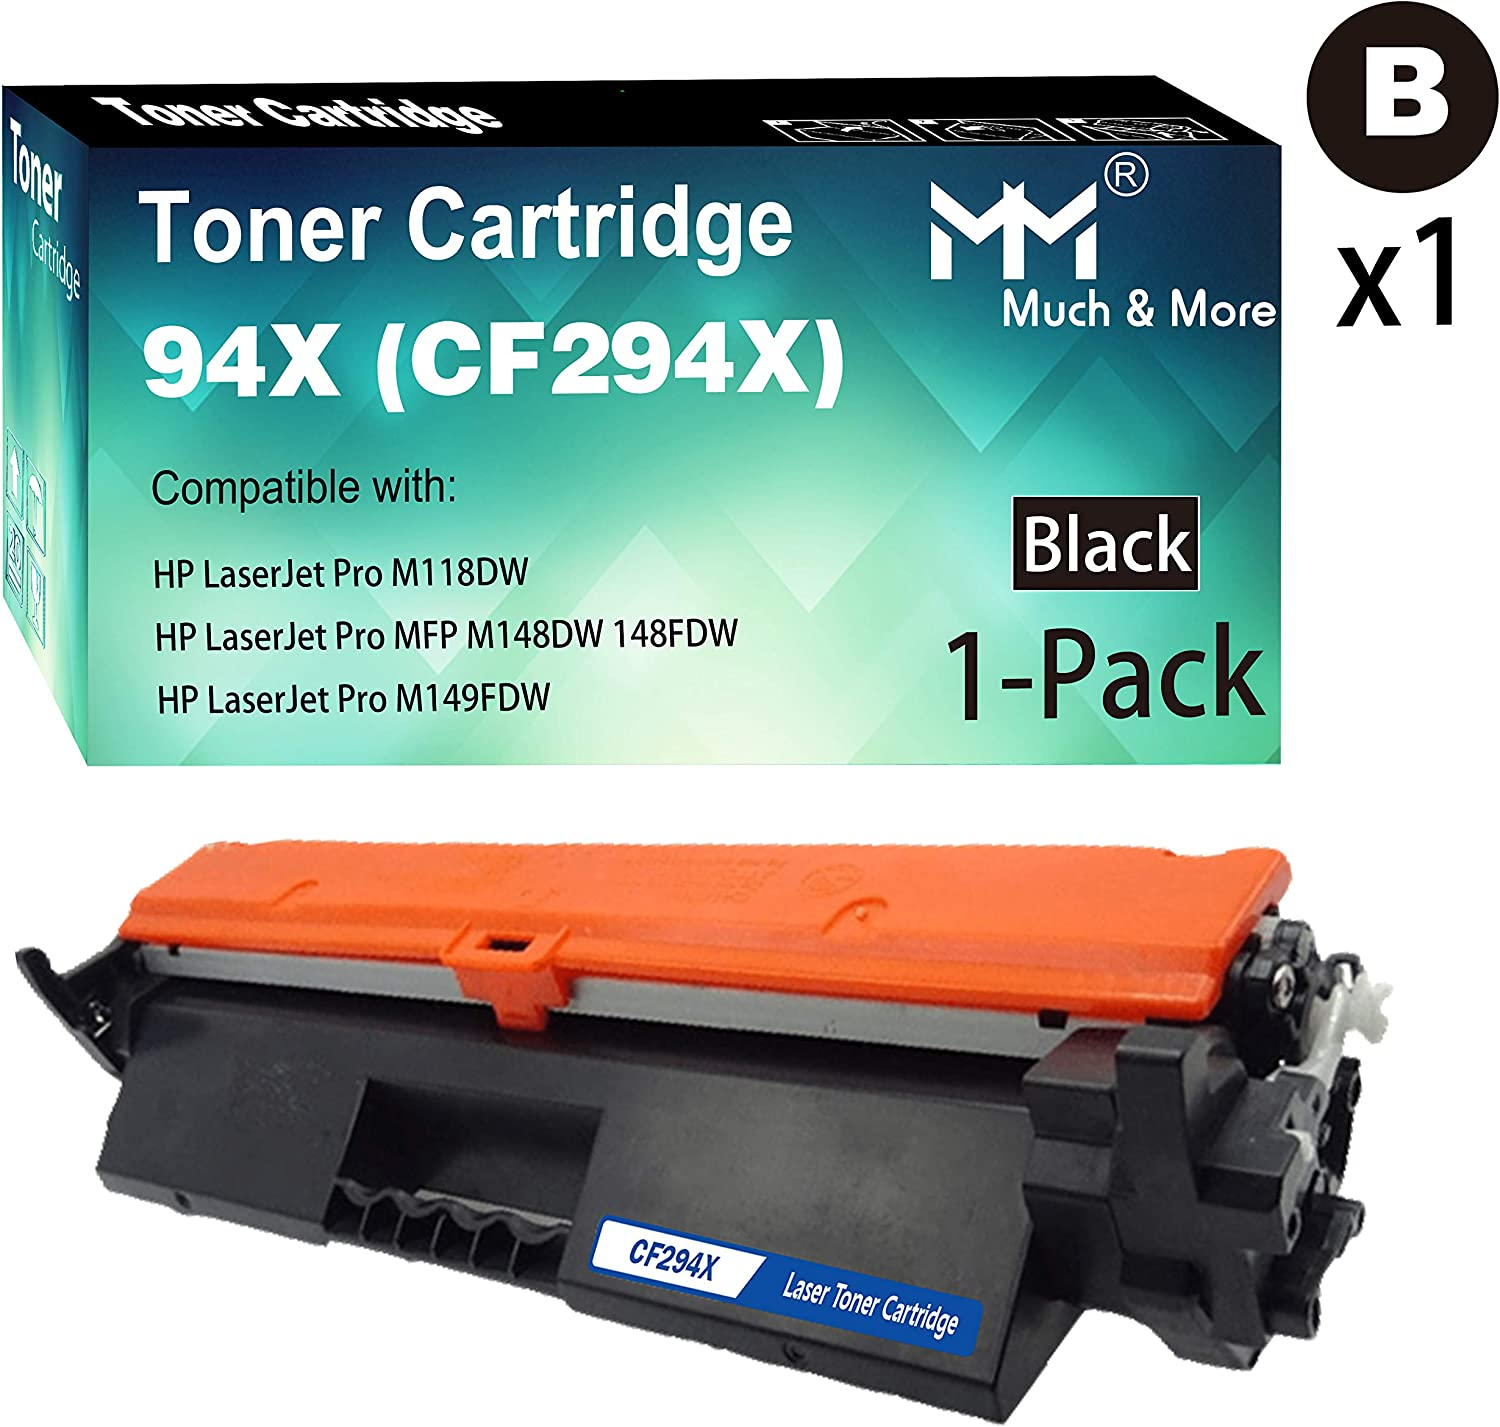 Compatible (1-Pack, High Yield, Black) 294X CF294X Toner Cartridge 94X Used for HP M118DW MFP M148DW 148FDW M149FDW M149FDW Printer, Sold by MuchMore